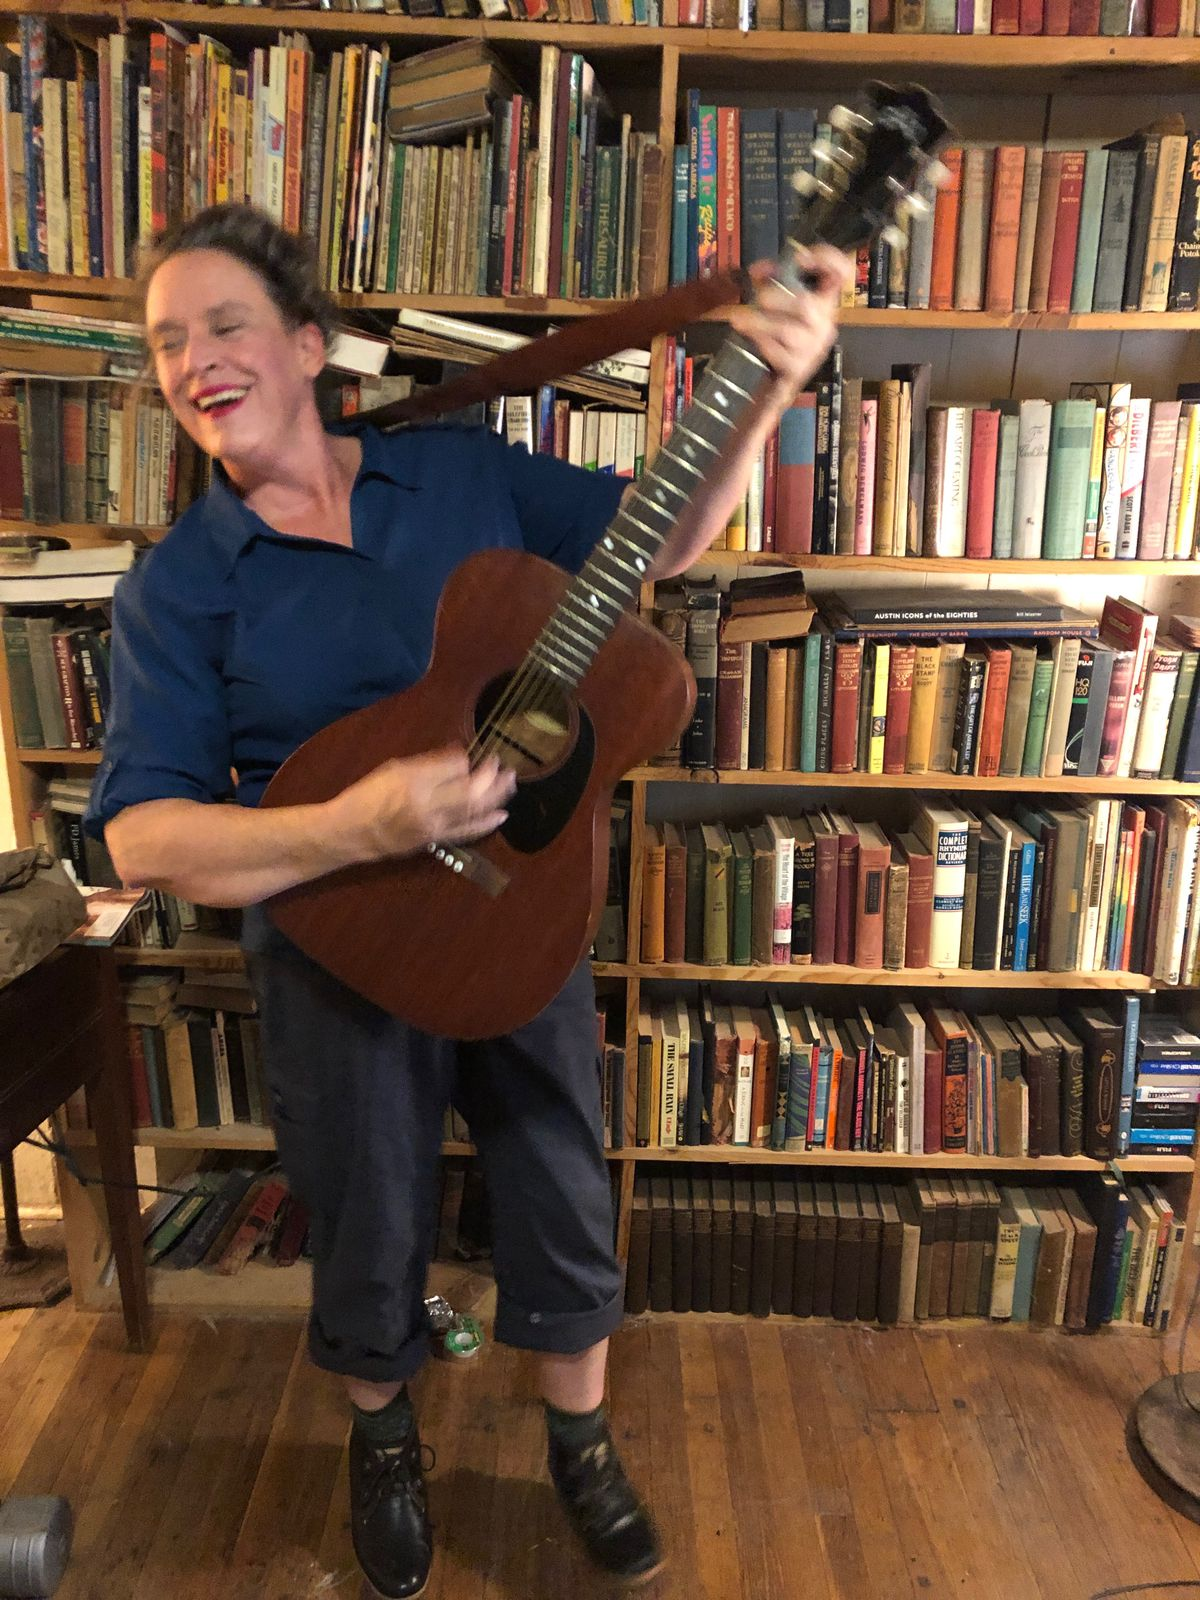 A white 50-something woman holding up an acoustic guitar as she plays, looking to the side and laughing. There is a floor-to-ceiling bookshelf full of books behind her.